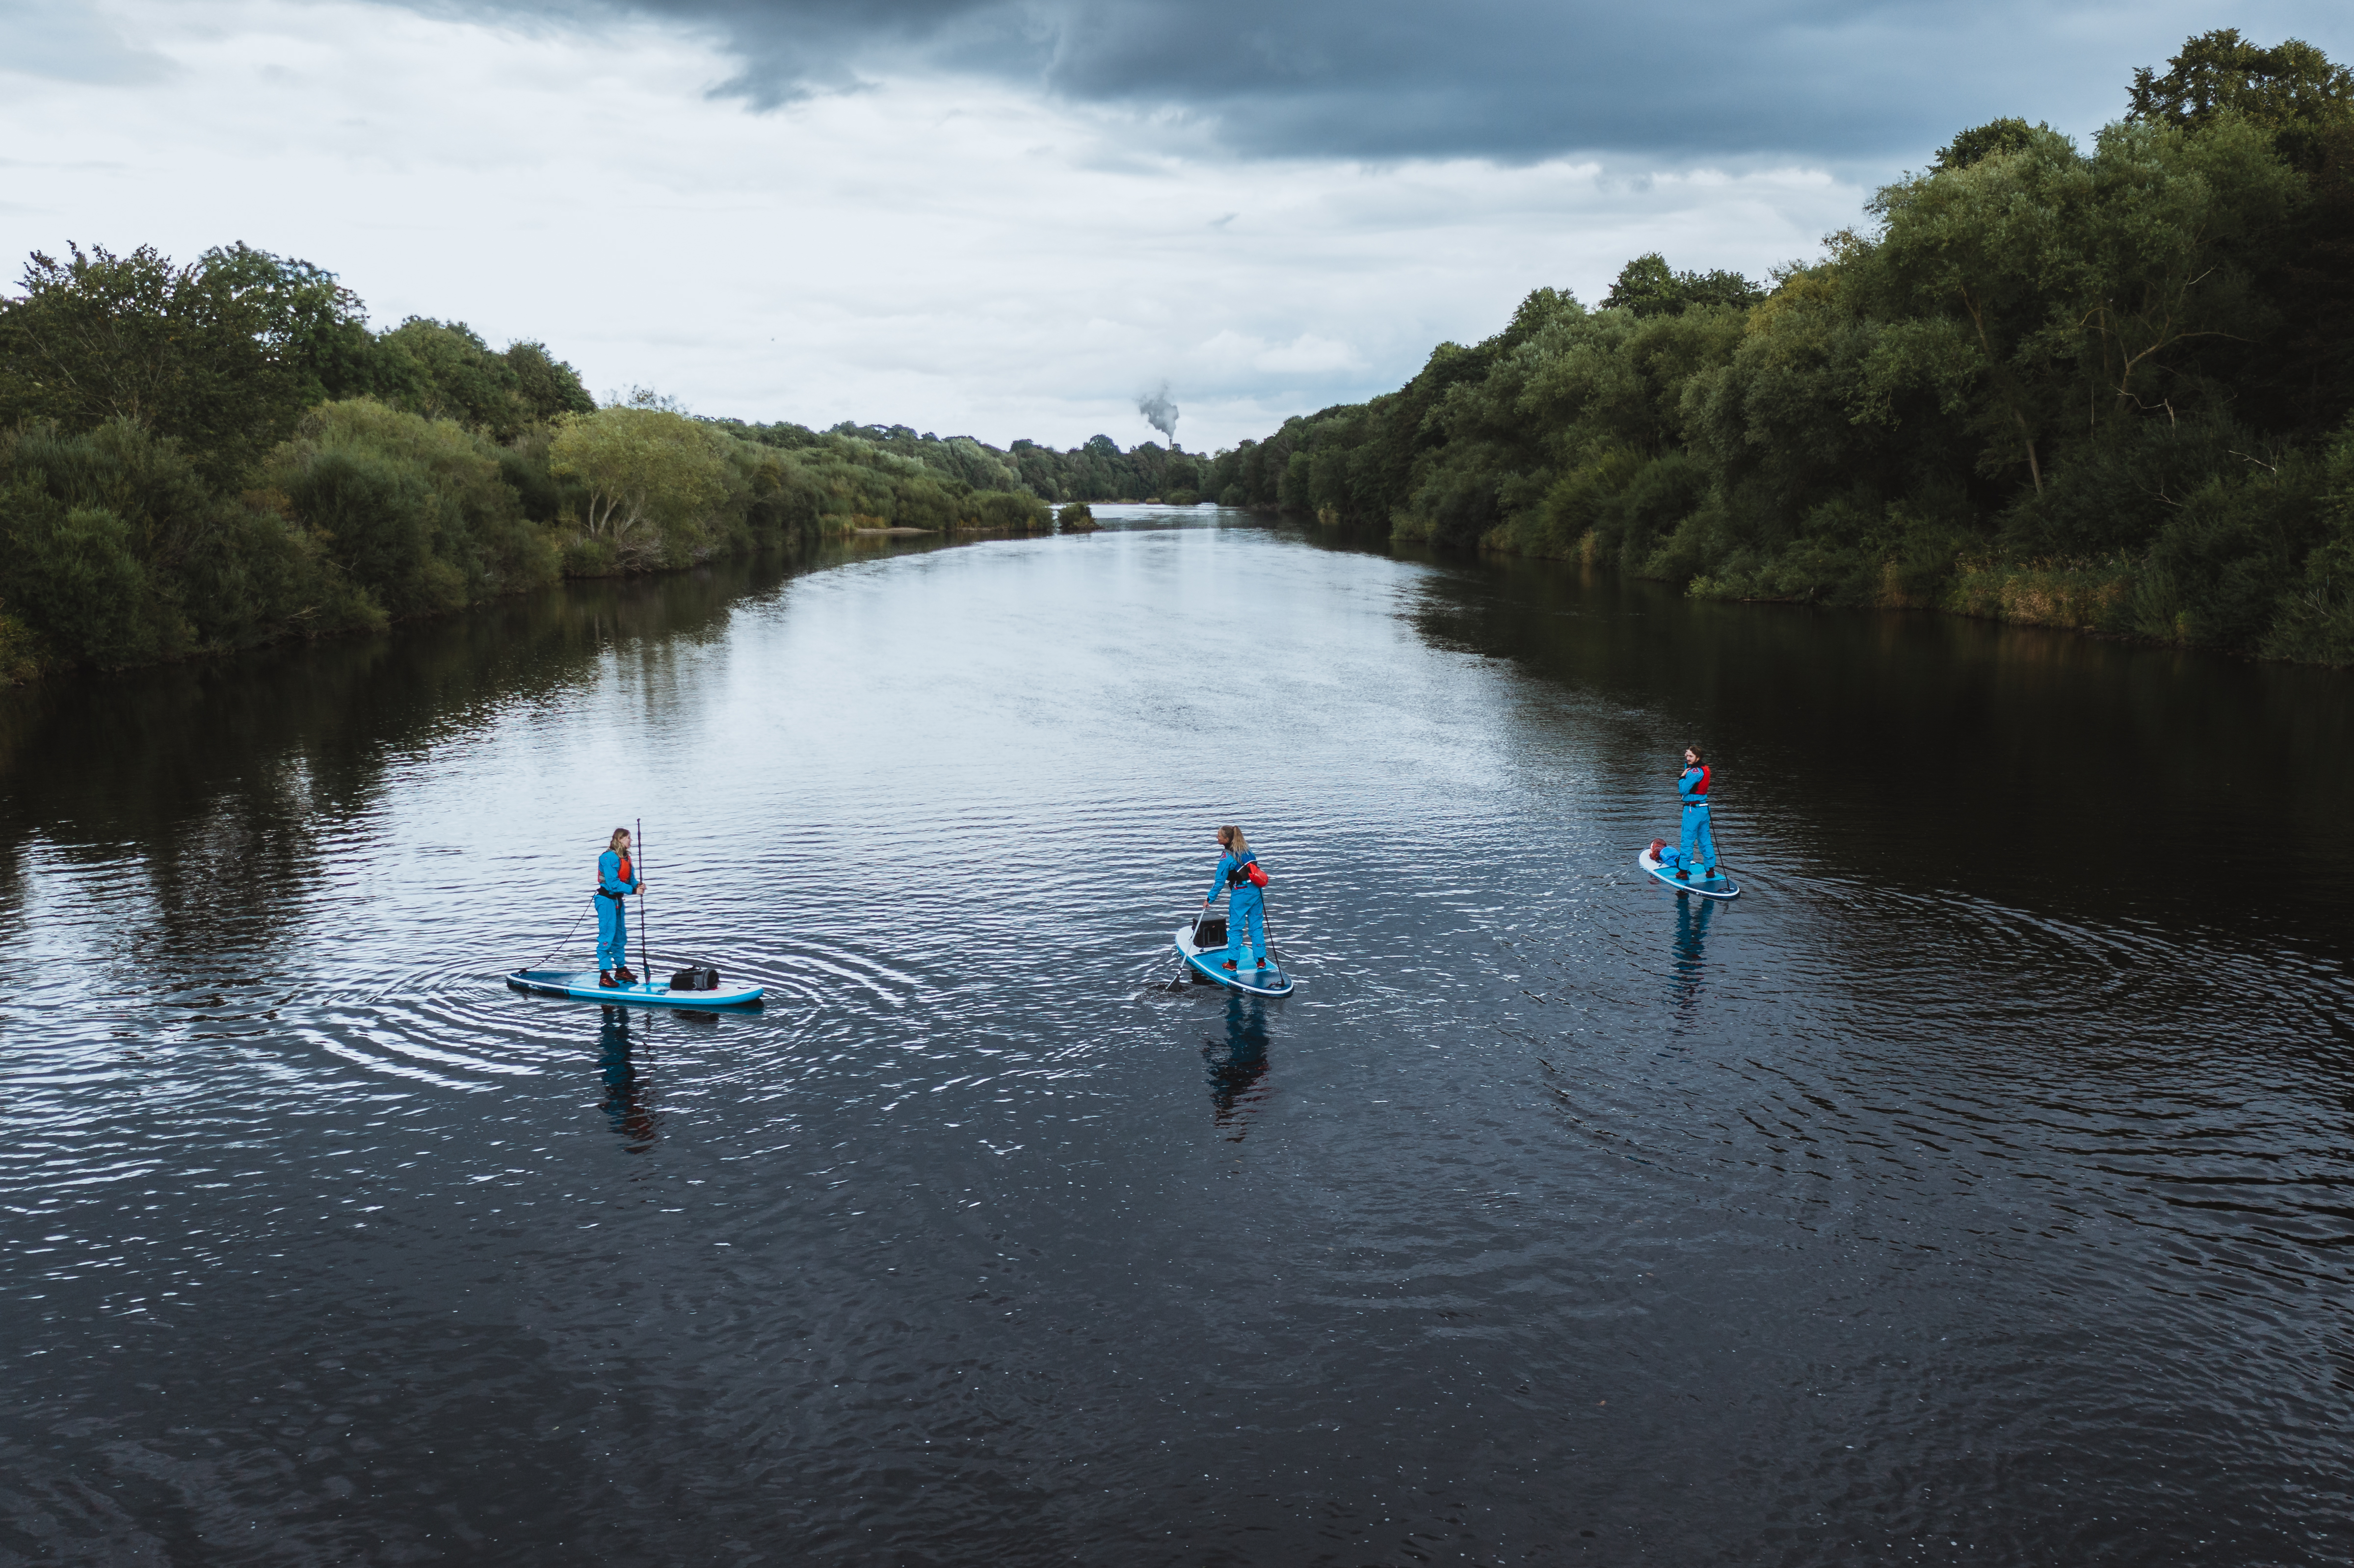 Shot of river surrounded by thick green trees, there are three people stood on top of blue paddle boards on the water